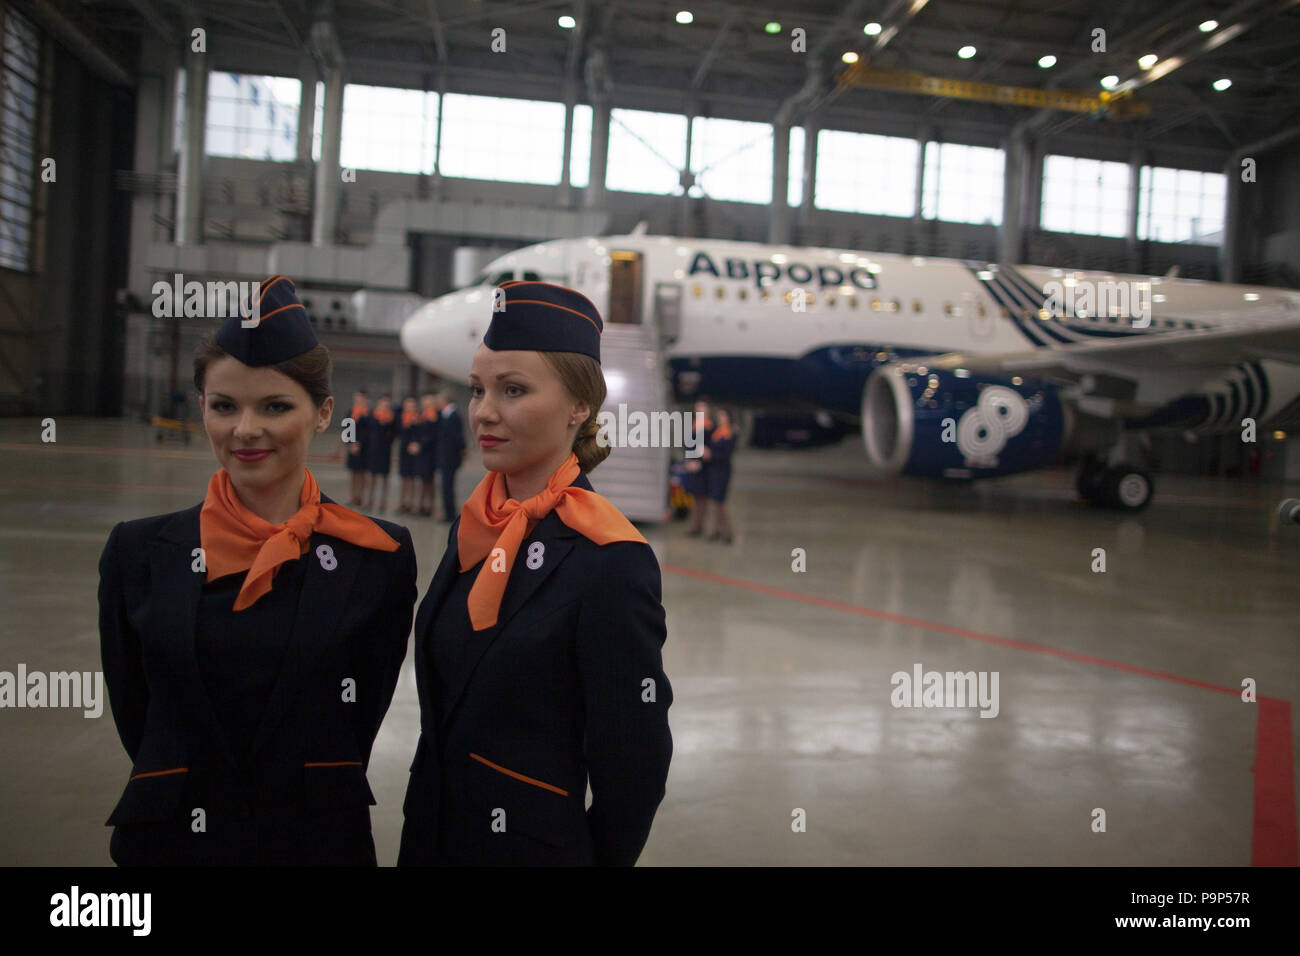 Two flight attendants of Aurora airline stand near the airline's first Airbus A319 civil jet airplane during the official presentation at Sheremetyevo - Stock Image